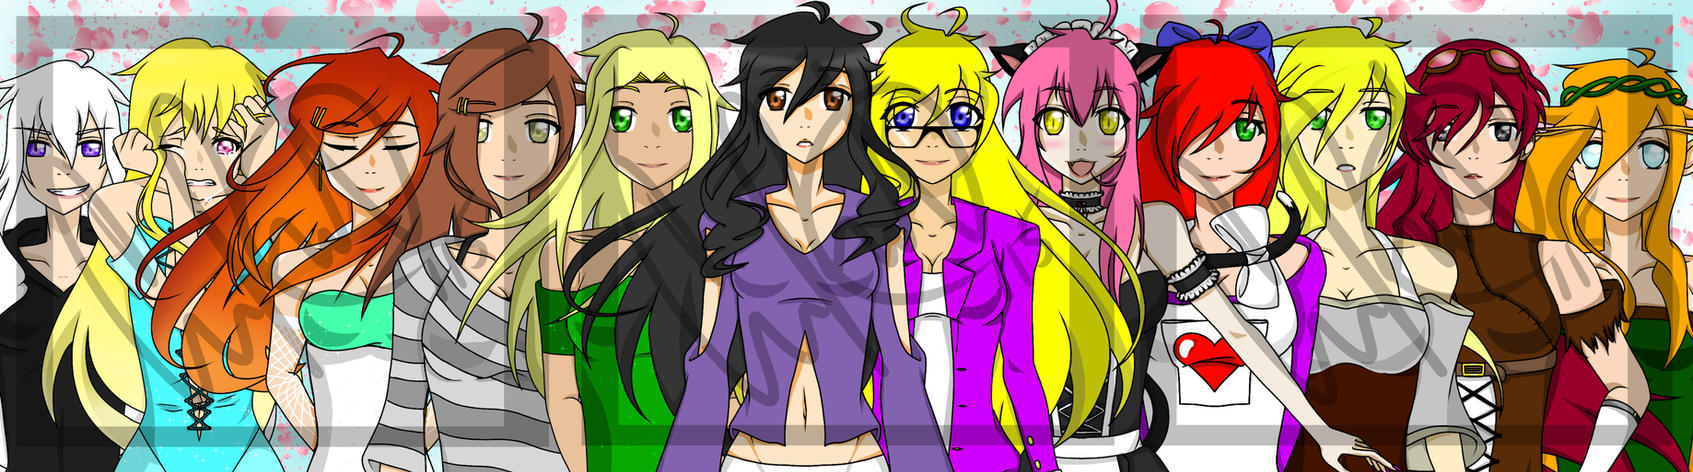 The Ladies of Minecraft Diaries by Symarin on DeviantArt for All Minecraft Characters  59dqh